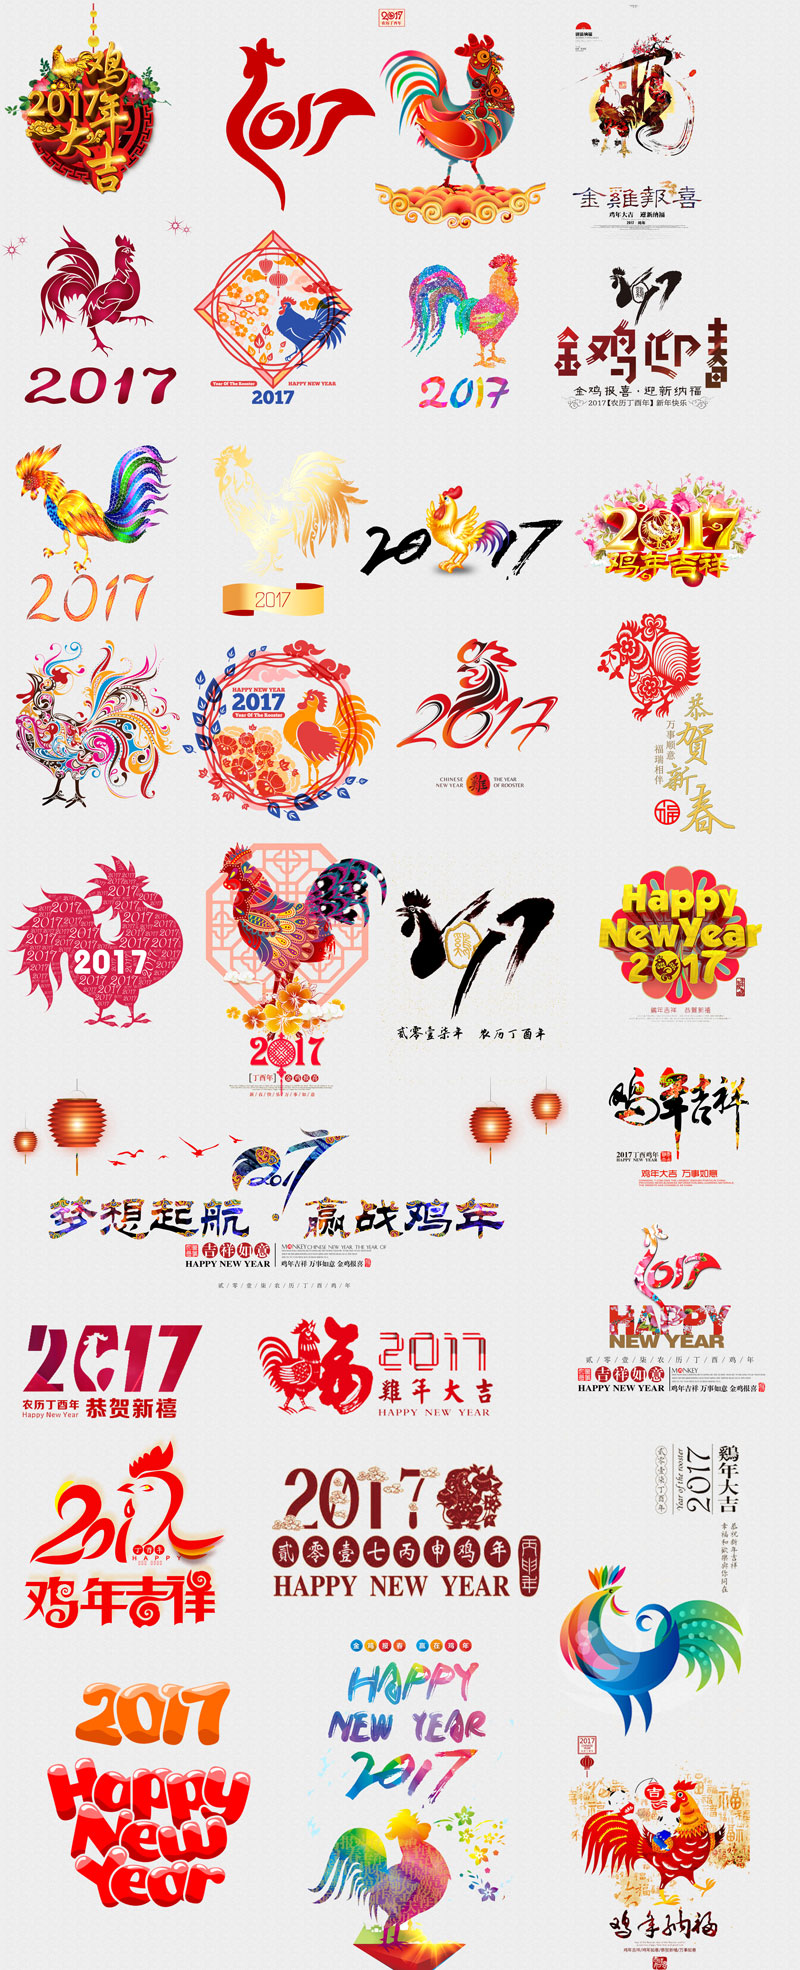 chinesefontdesign.com 2016 12 24 16 57 24 2017 About Chinas rooster graphic logo design PSD Free download